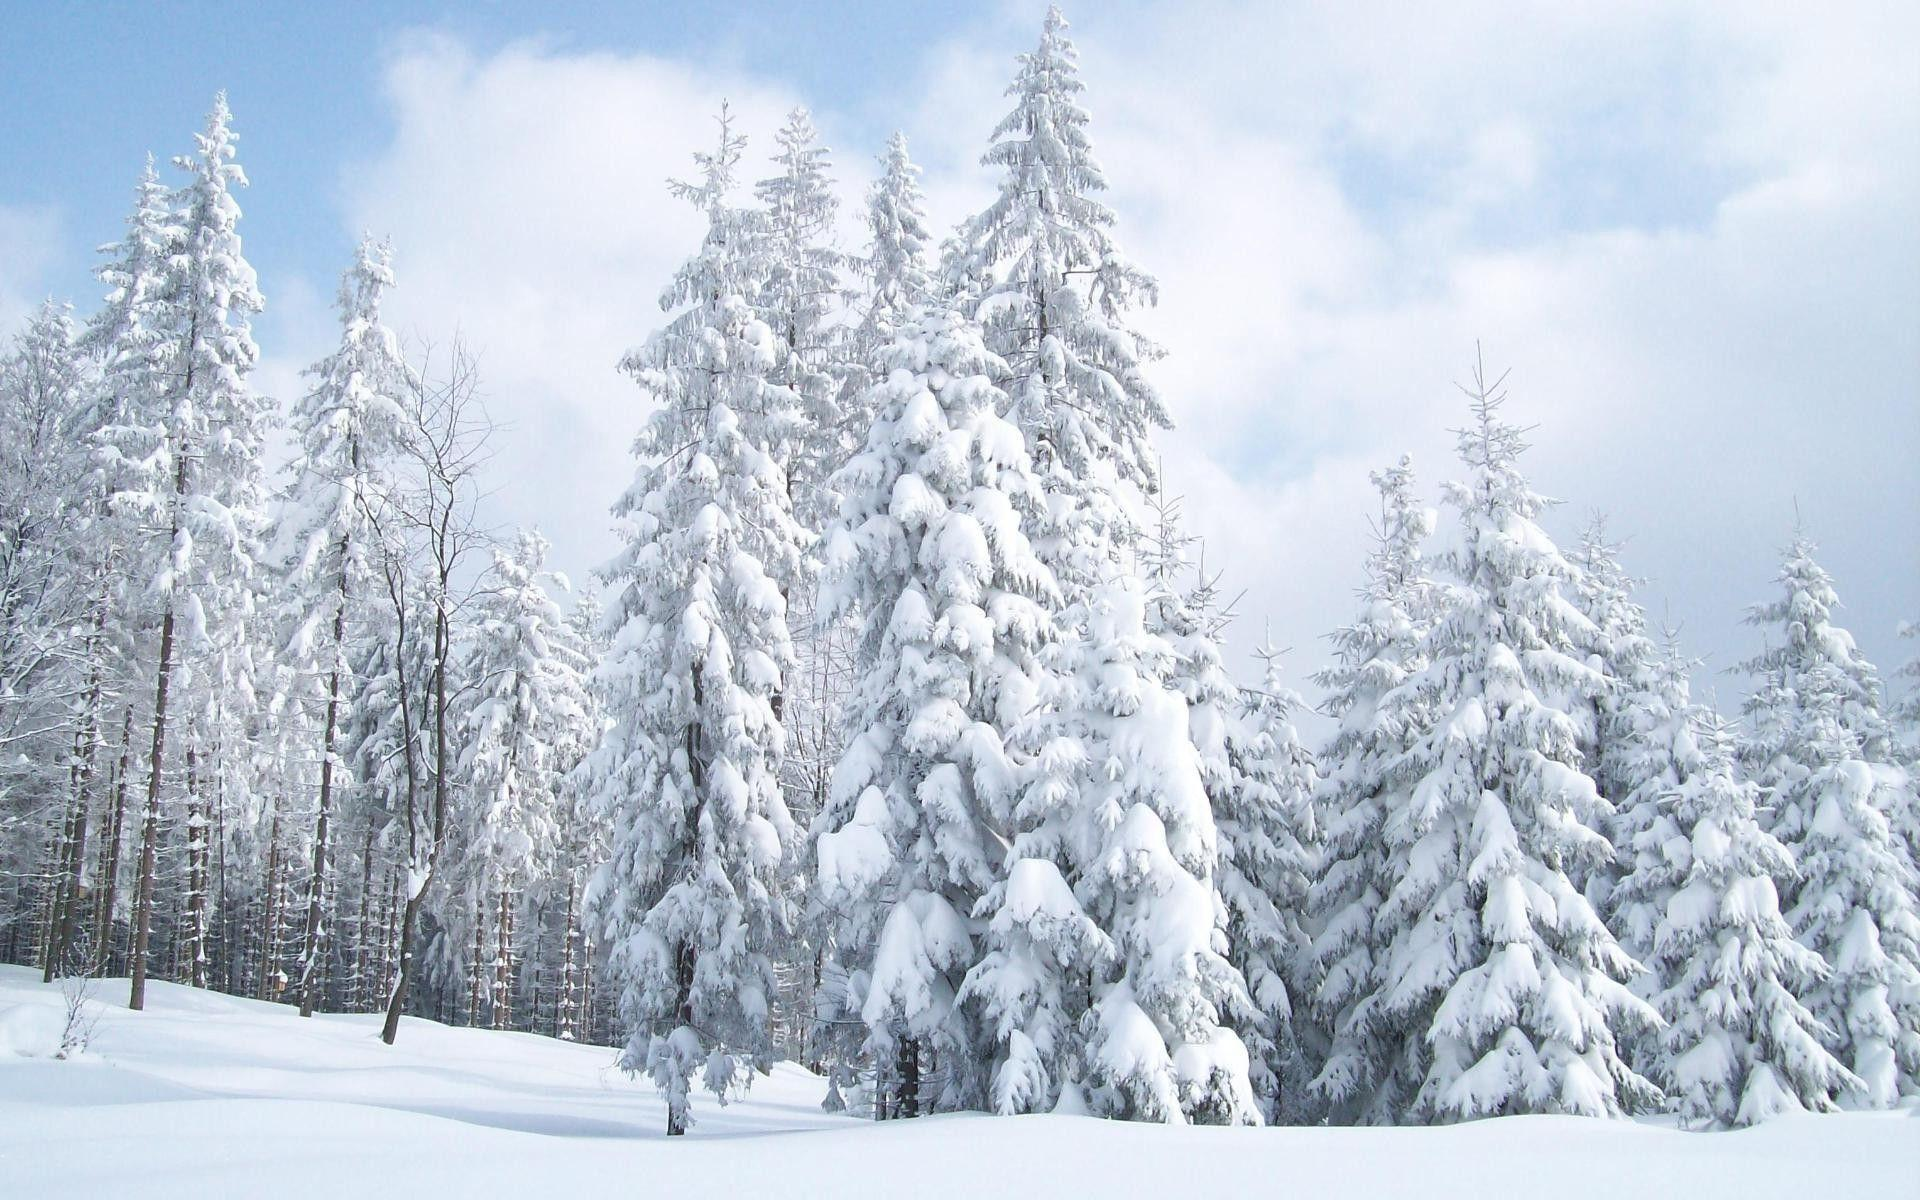 Snowy Trees Wallpapers - Wallpaper Cave